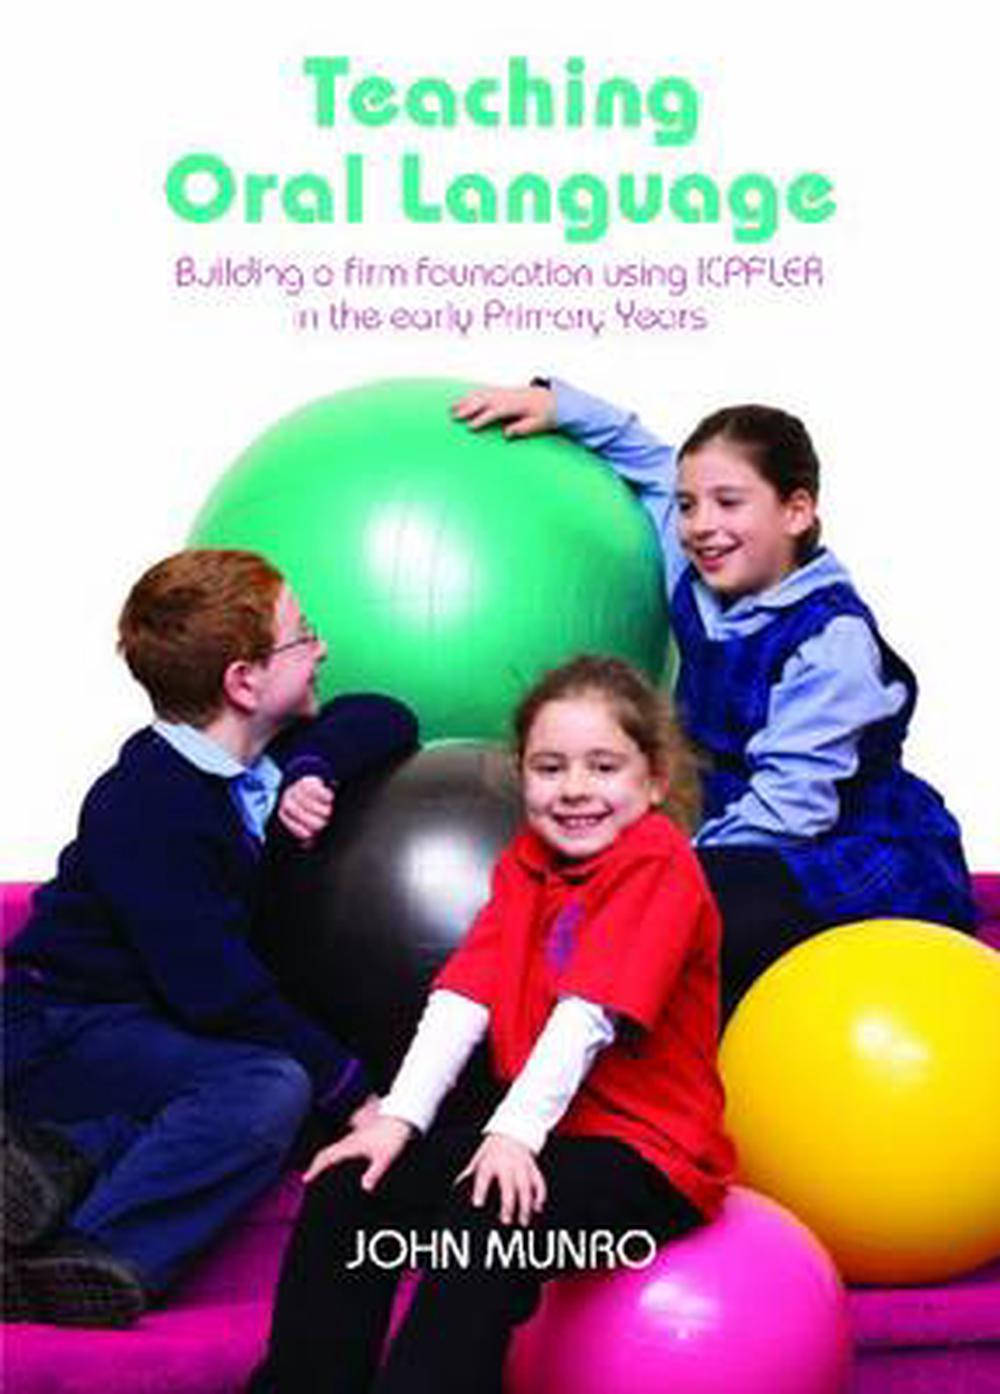 Teaching Oral Language: Building a Firm Foundation Using ICPALER in the Early Primary Years